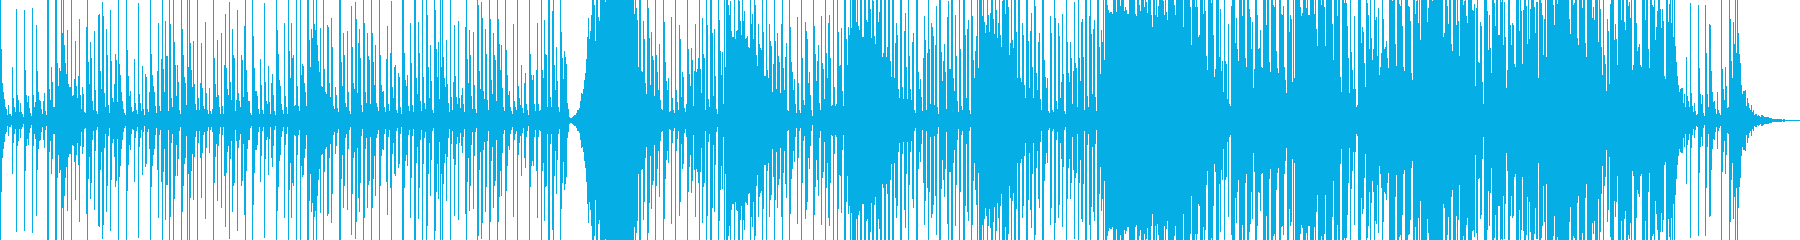 Clapping's reproduced waveform